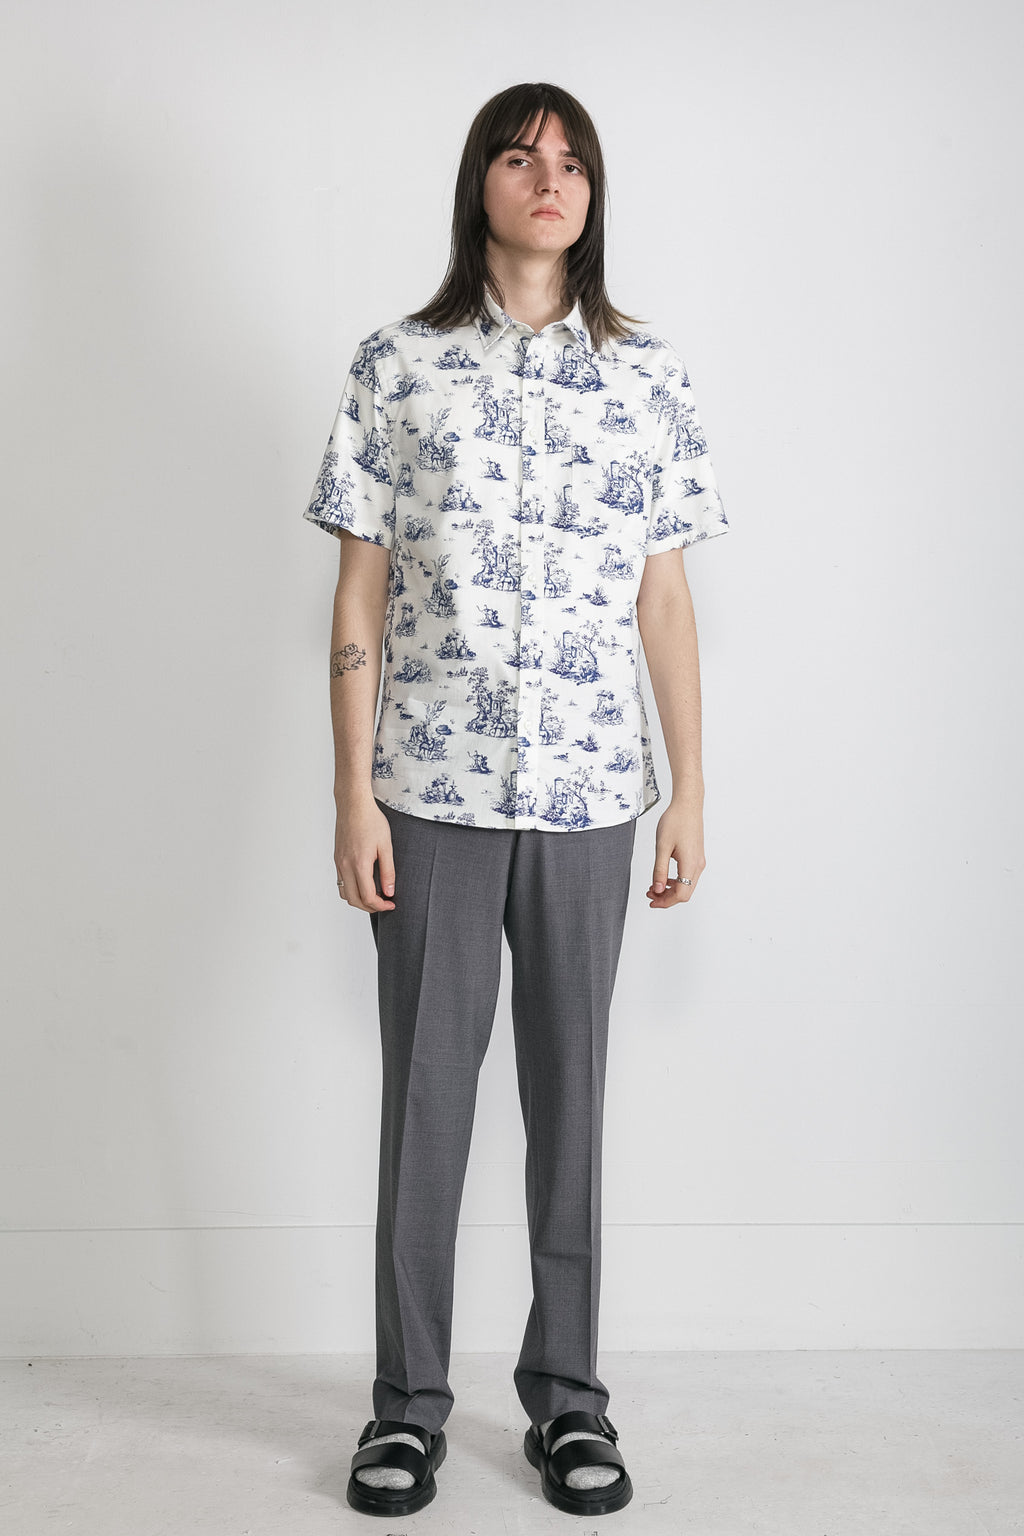 Japanese Safari Print in White and Blue 02